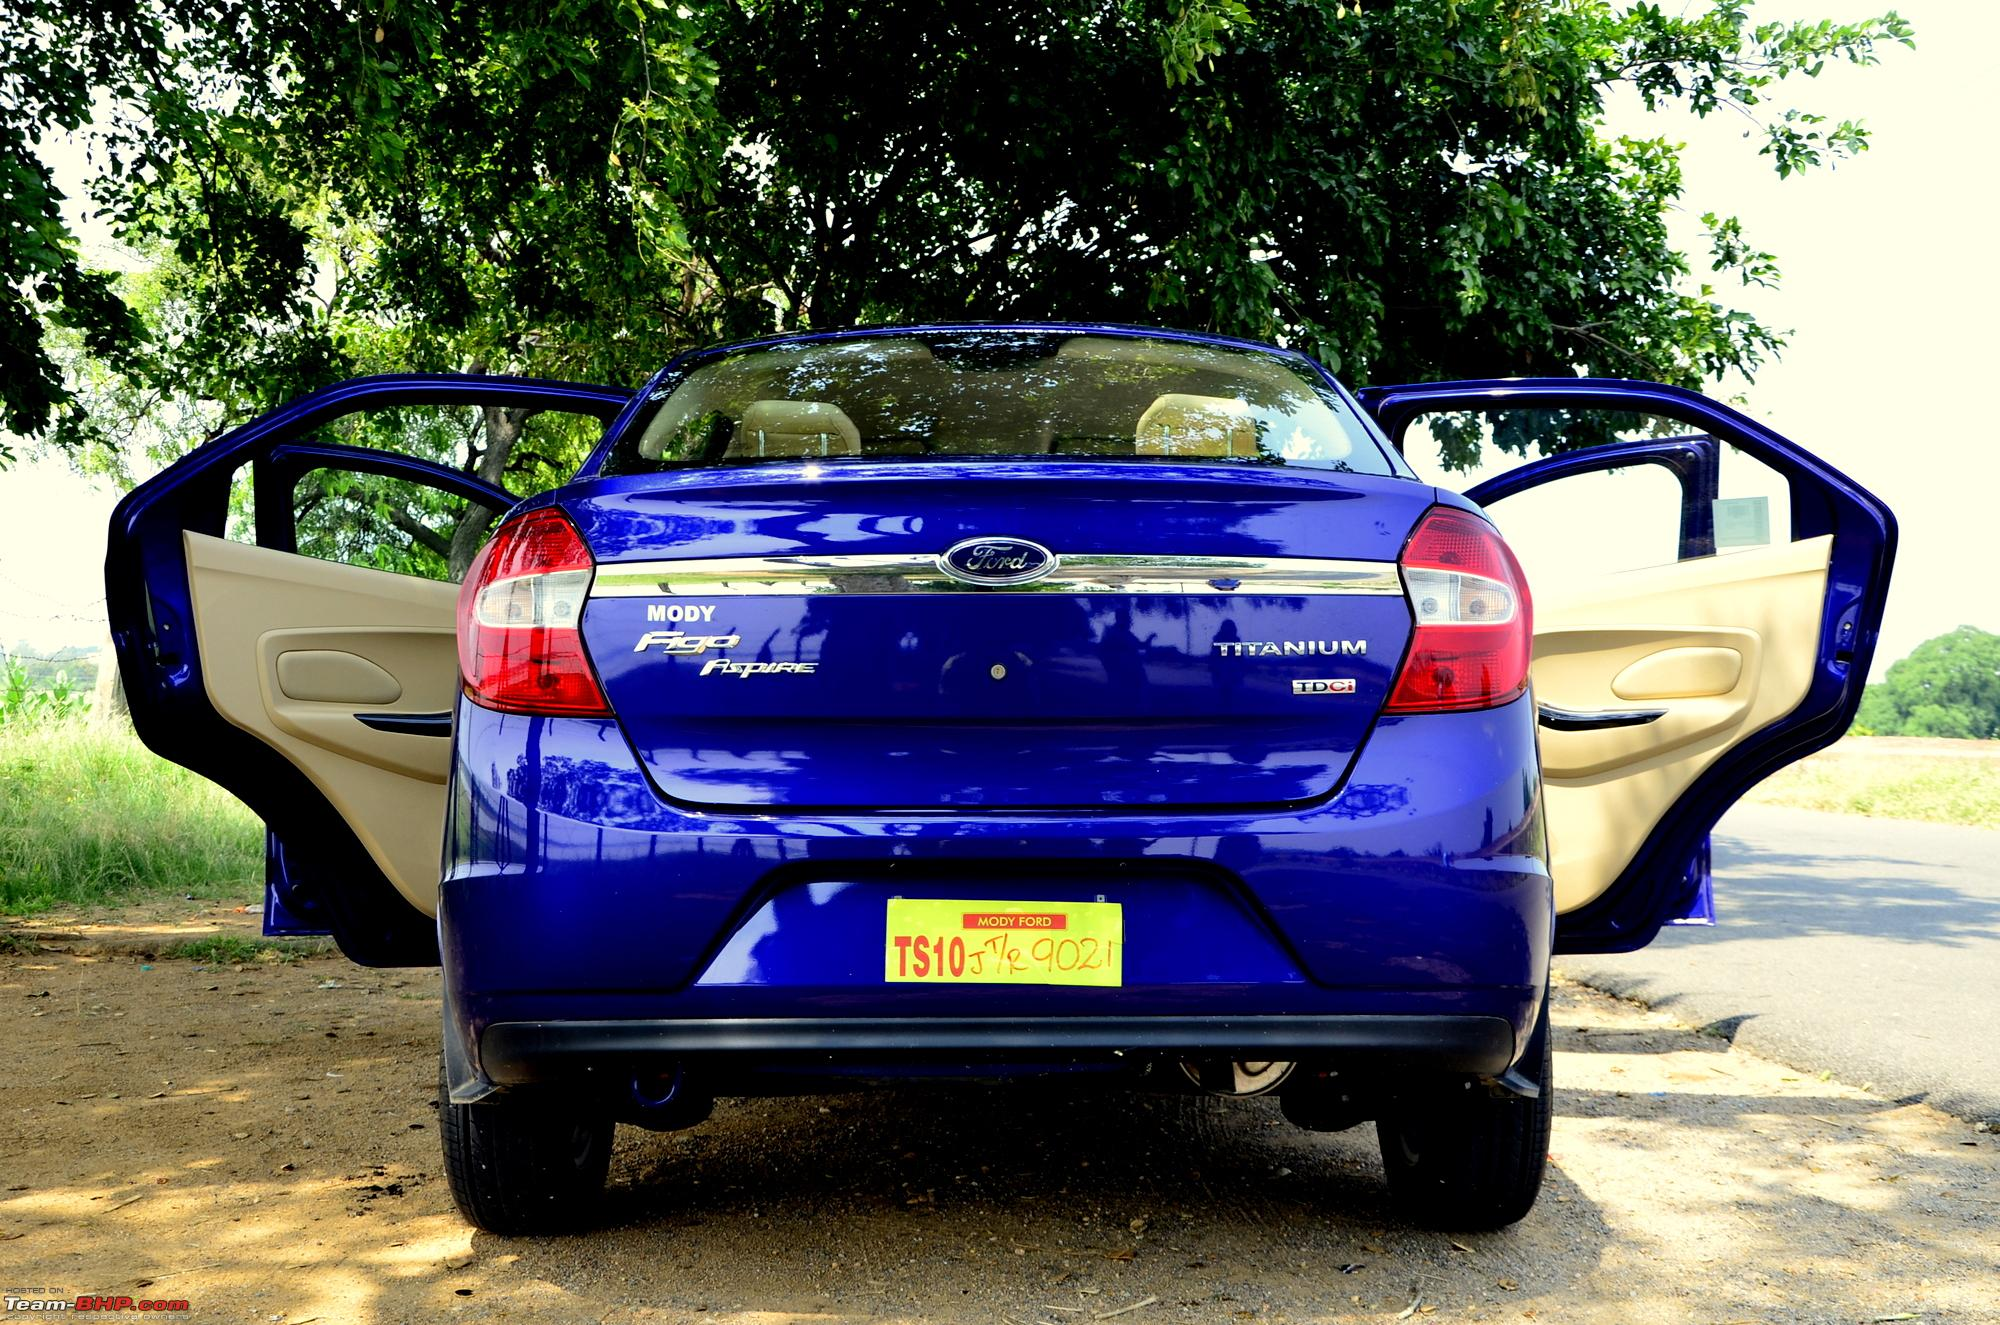 1426858d1444746256 Ford Figo Aspire Tdci My Blue Bombardier Flying Low Tarmac Edit 15 000kms Completed Dsc3041 2000x1325